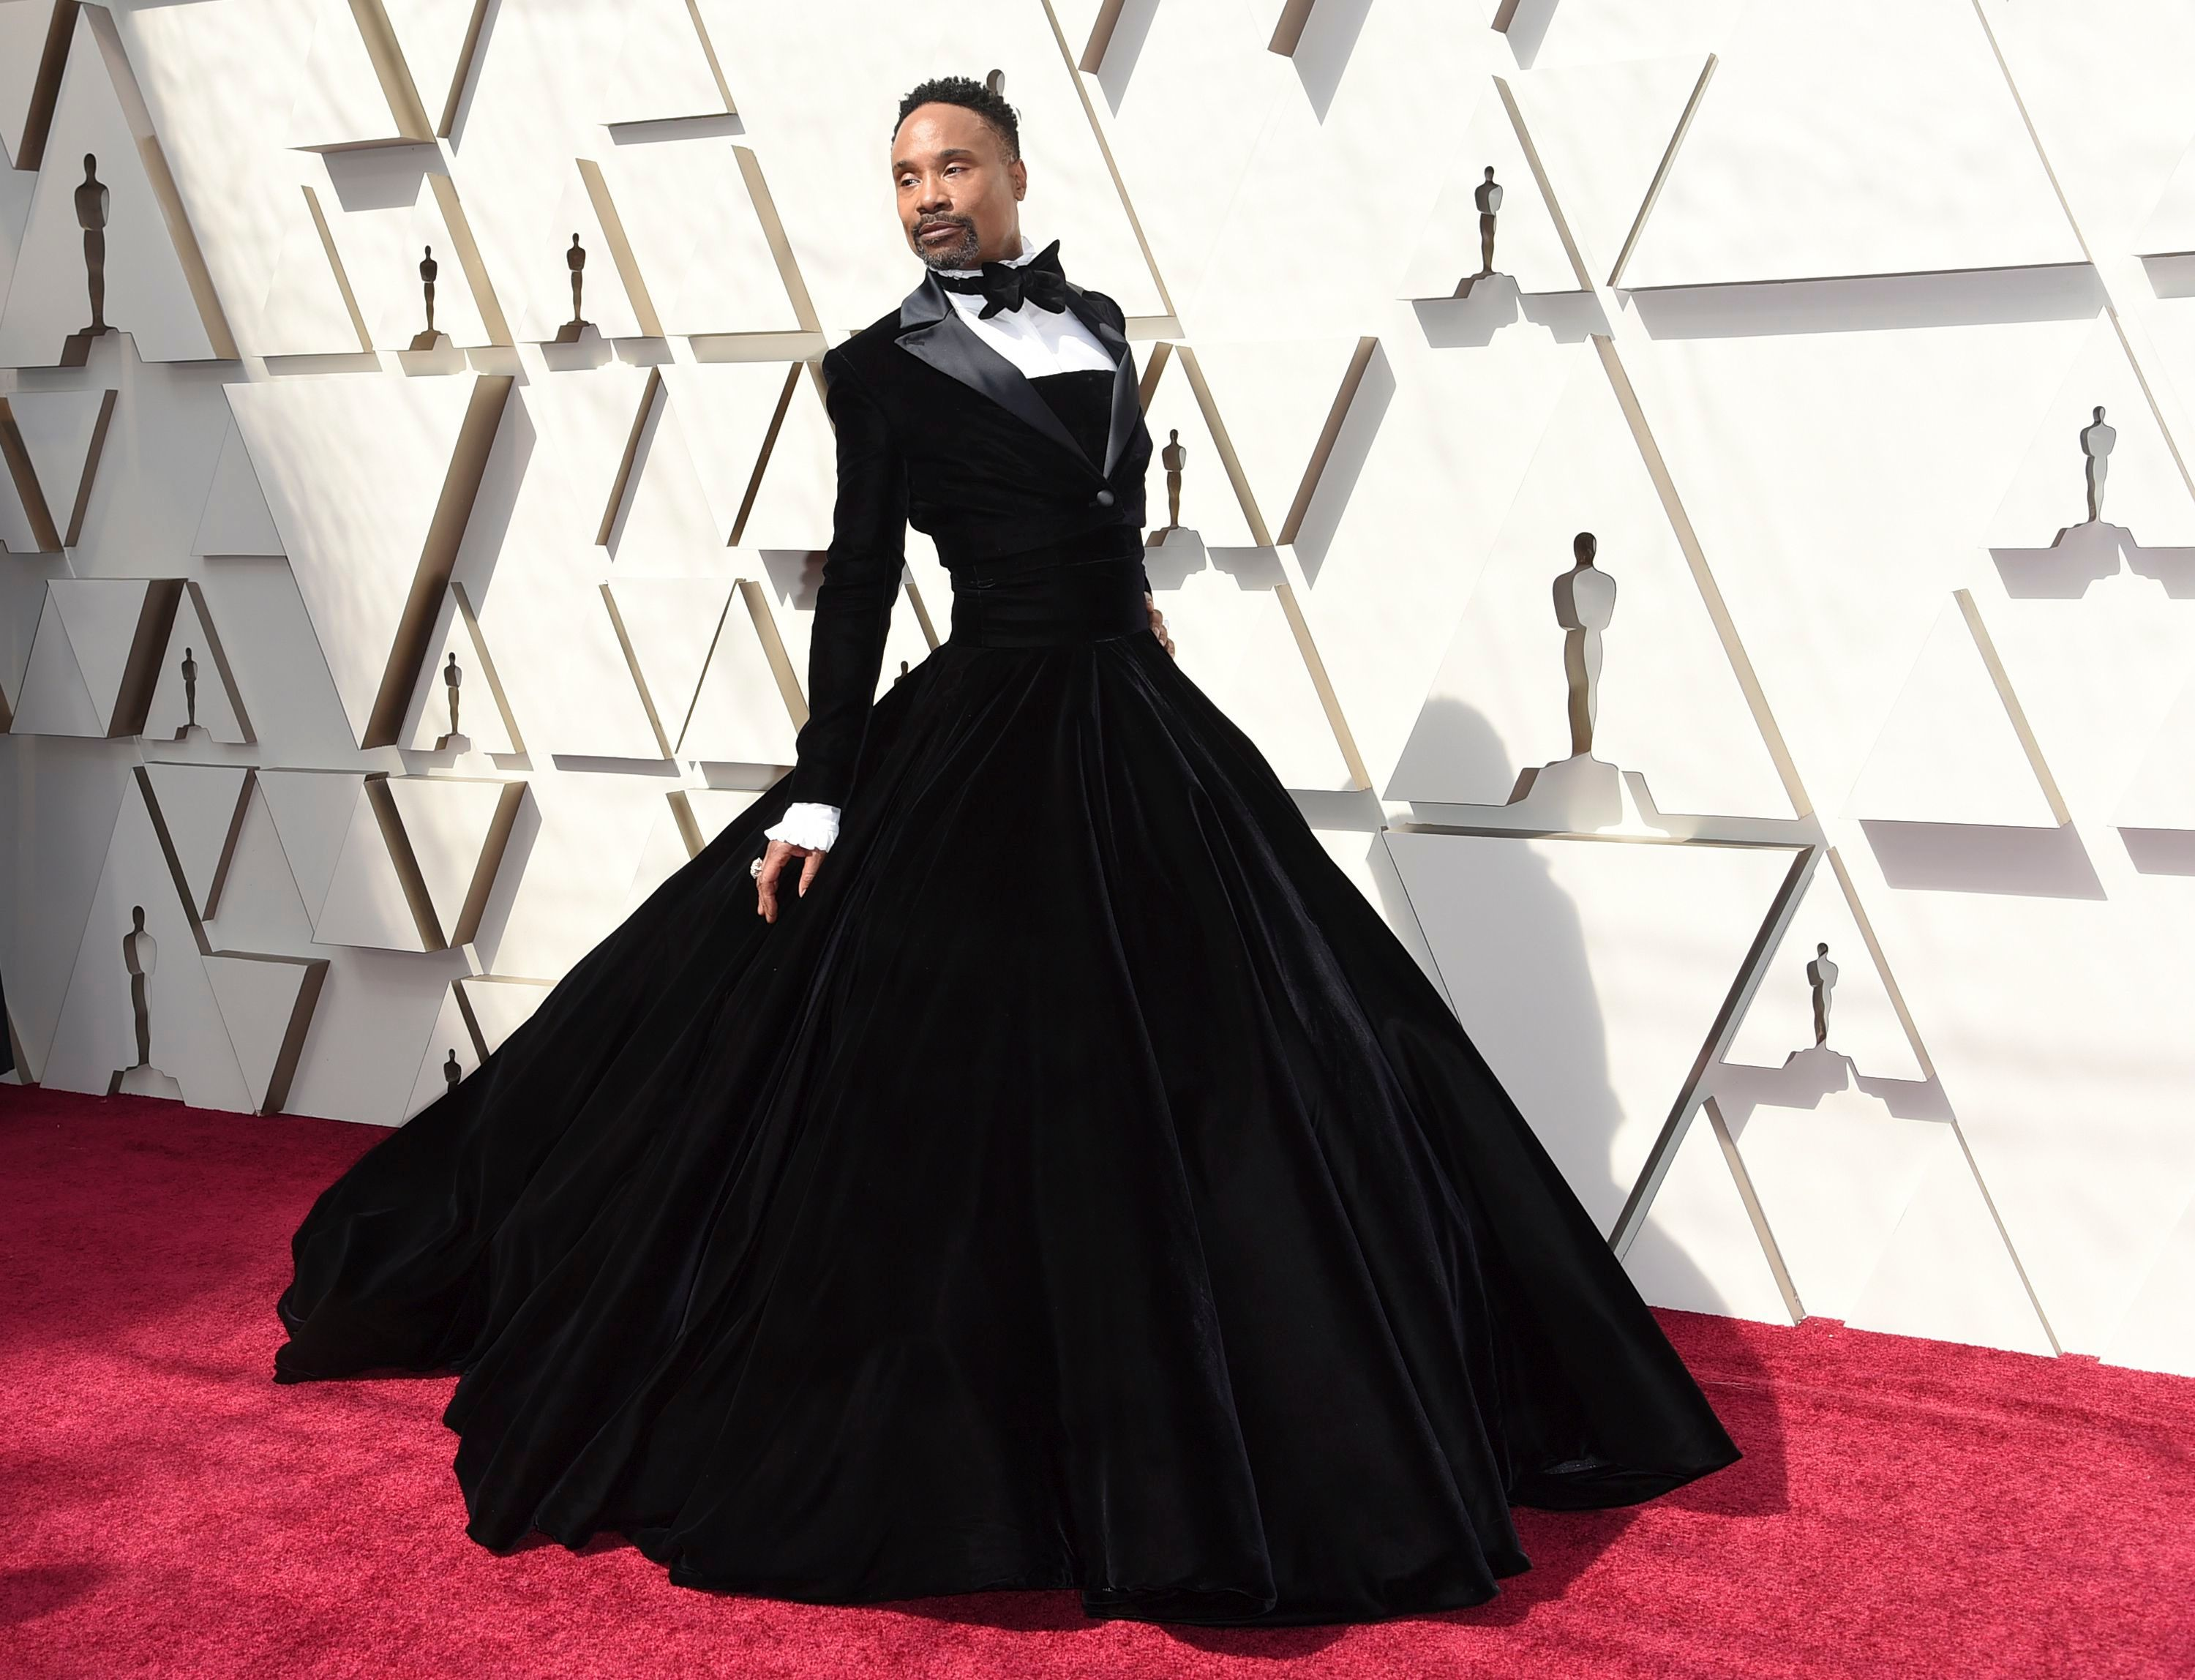 Billy Porter arrives at the Oscars, at the Dolby Theatre in Los Angeles91st Academy Awards - Arrivals, Los Angeles, USA - 24 Feb 2019